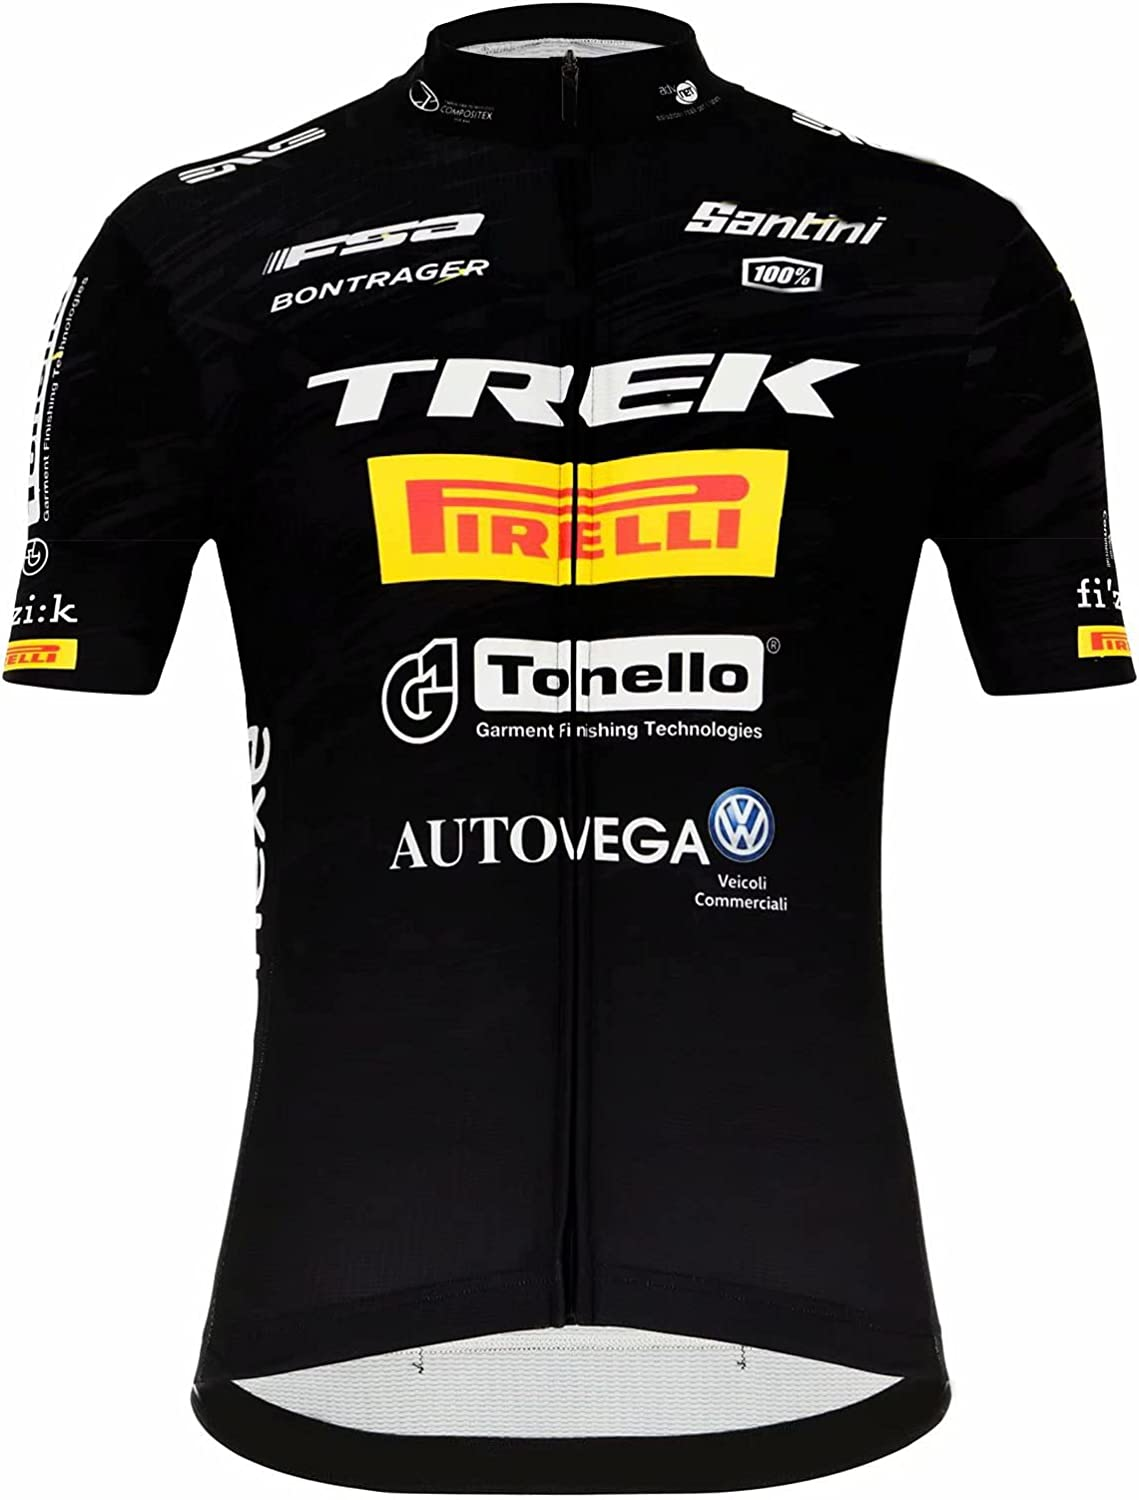 Max 59% OFF T.R.S Bicycle Clothing latest for Men Jersey Short Sleeve Cycling